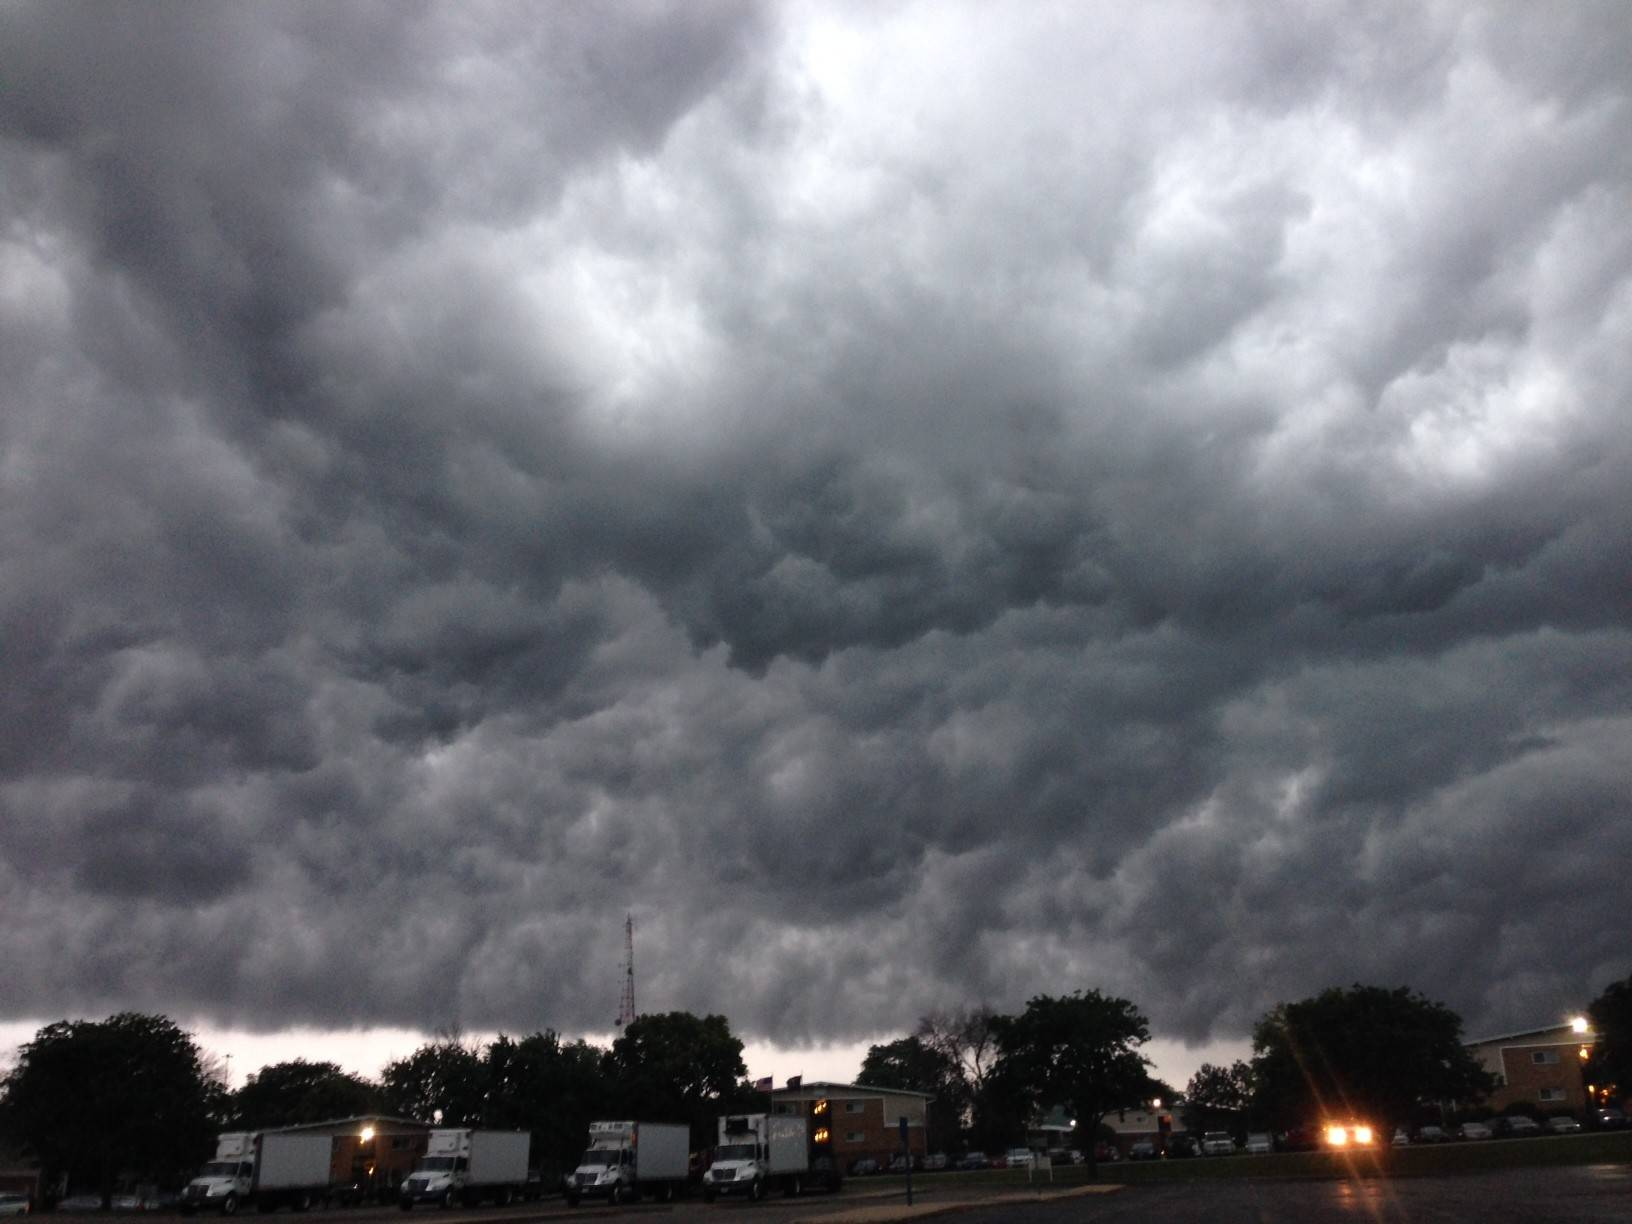 Storm clouds arrive near the intersection of Algonquin Road and Route 53 along the Palatine-Rolling Meadows border.